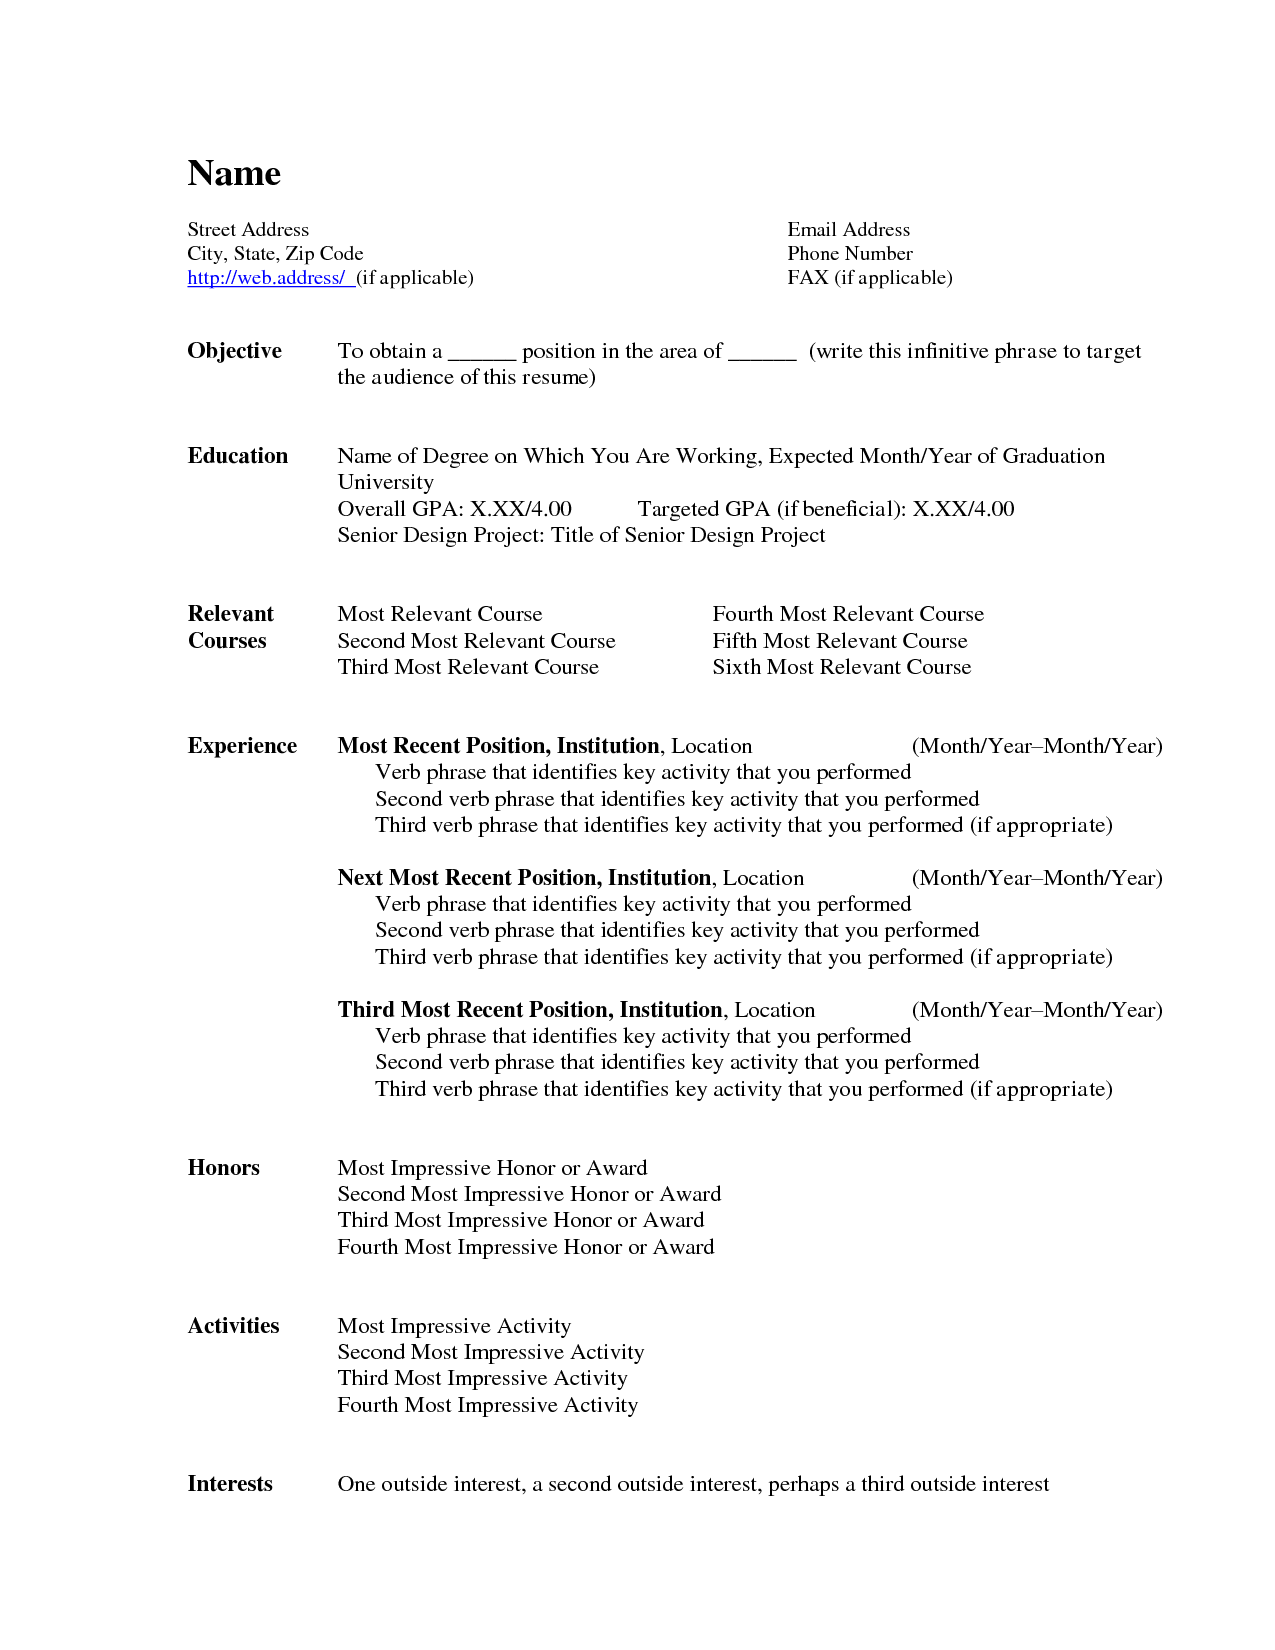 microsoft word resume template builder http job - Microsoft Word Sample Resume